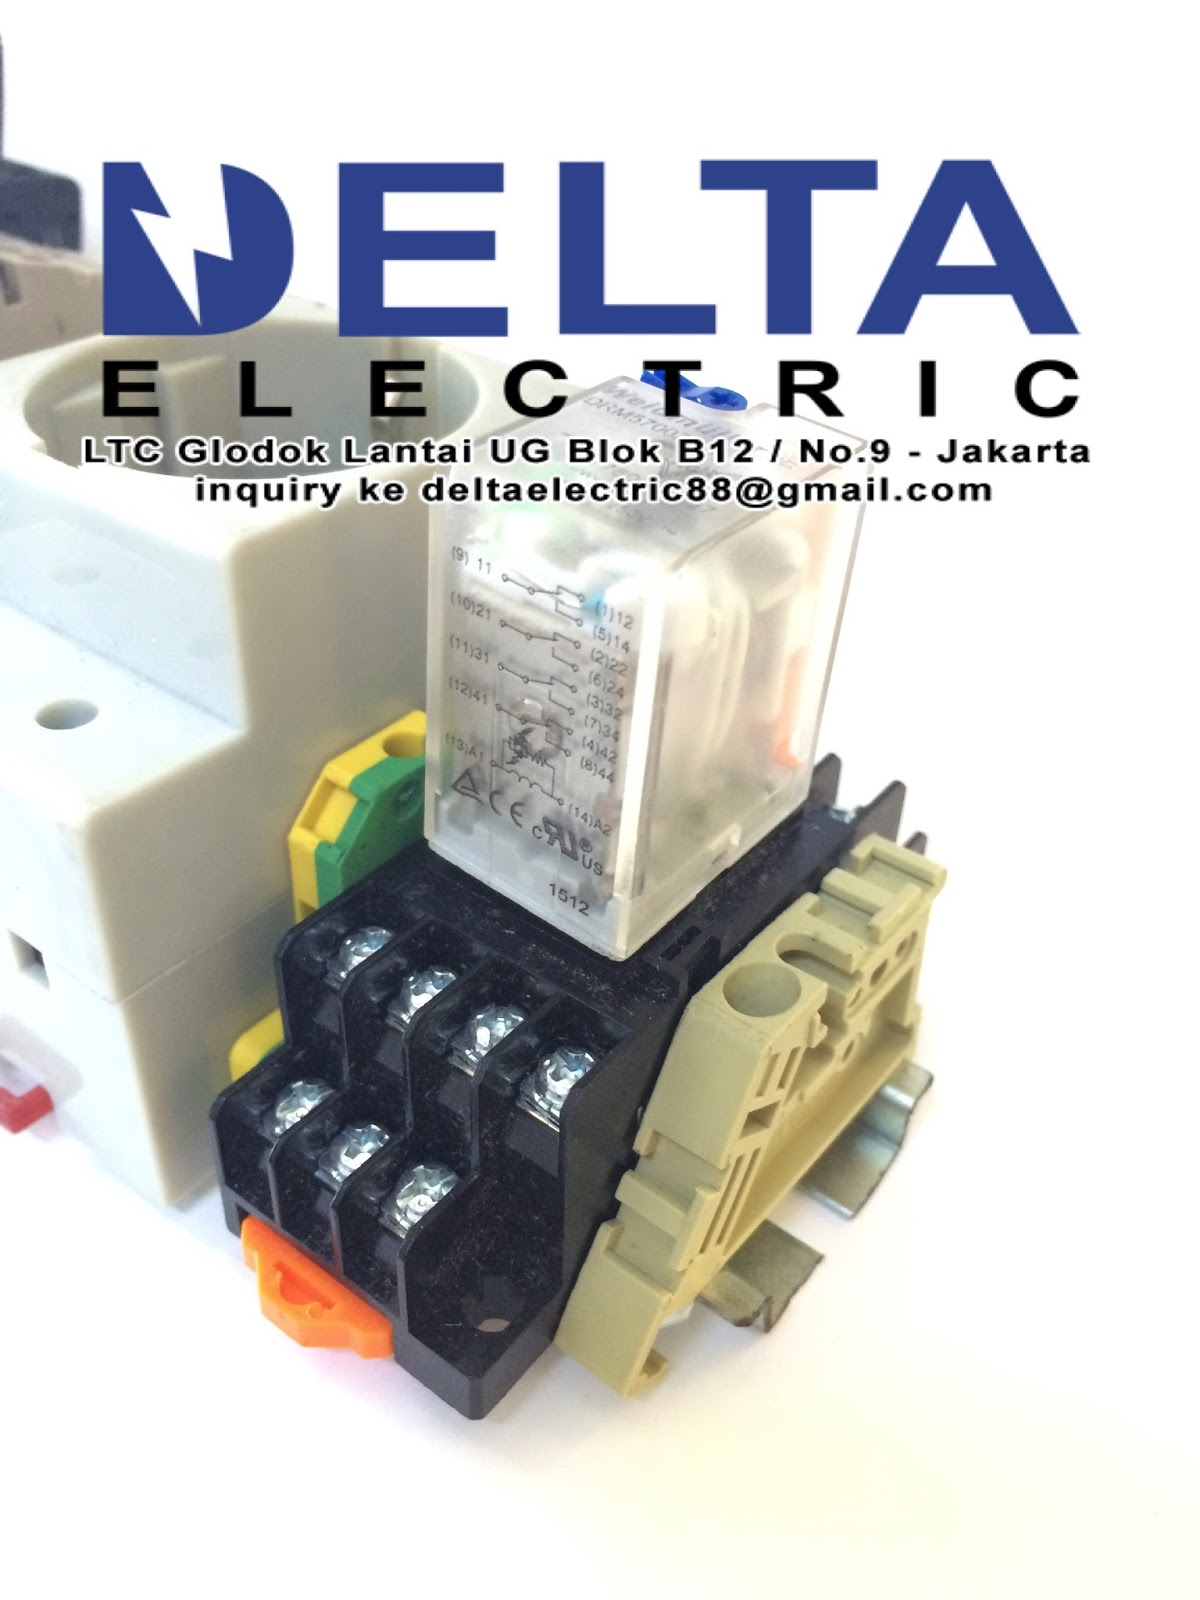 Delta Electric Relay Weidmuller By Terminal Relays Brand Lain Yg Kami Supply